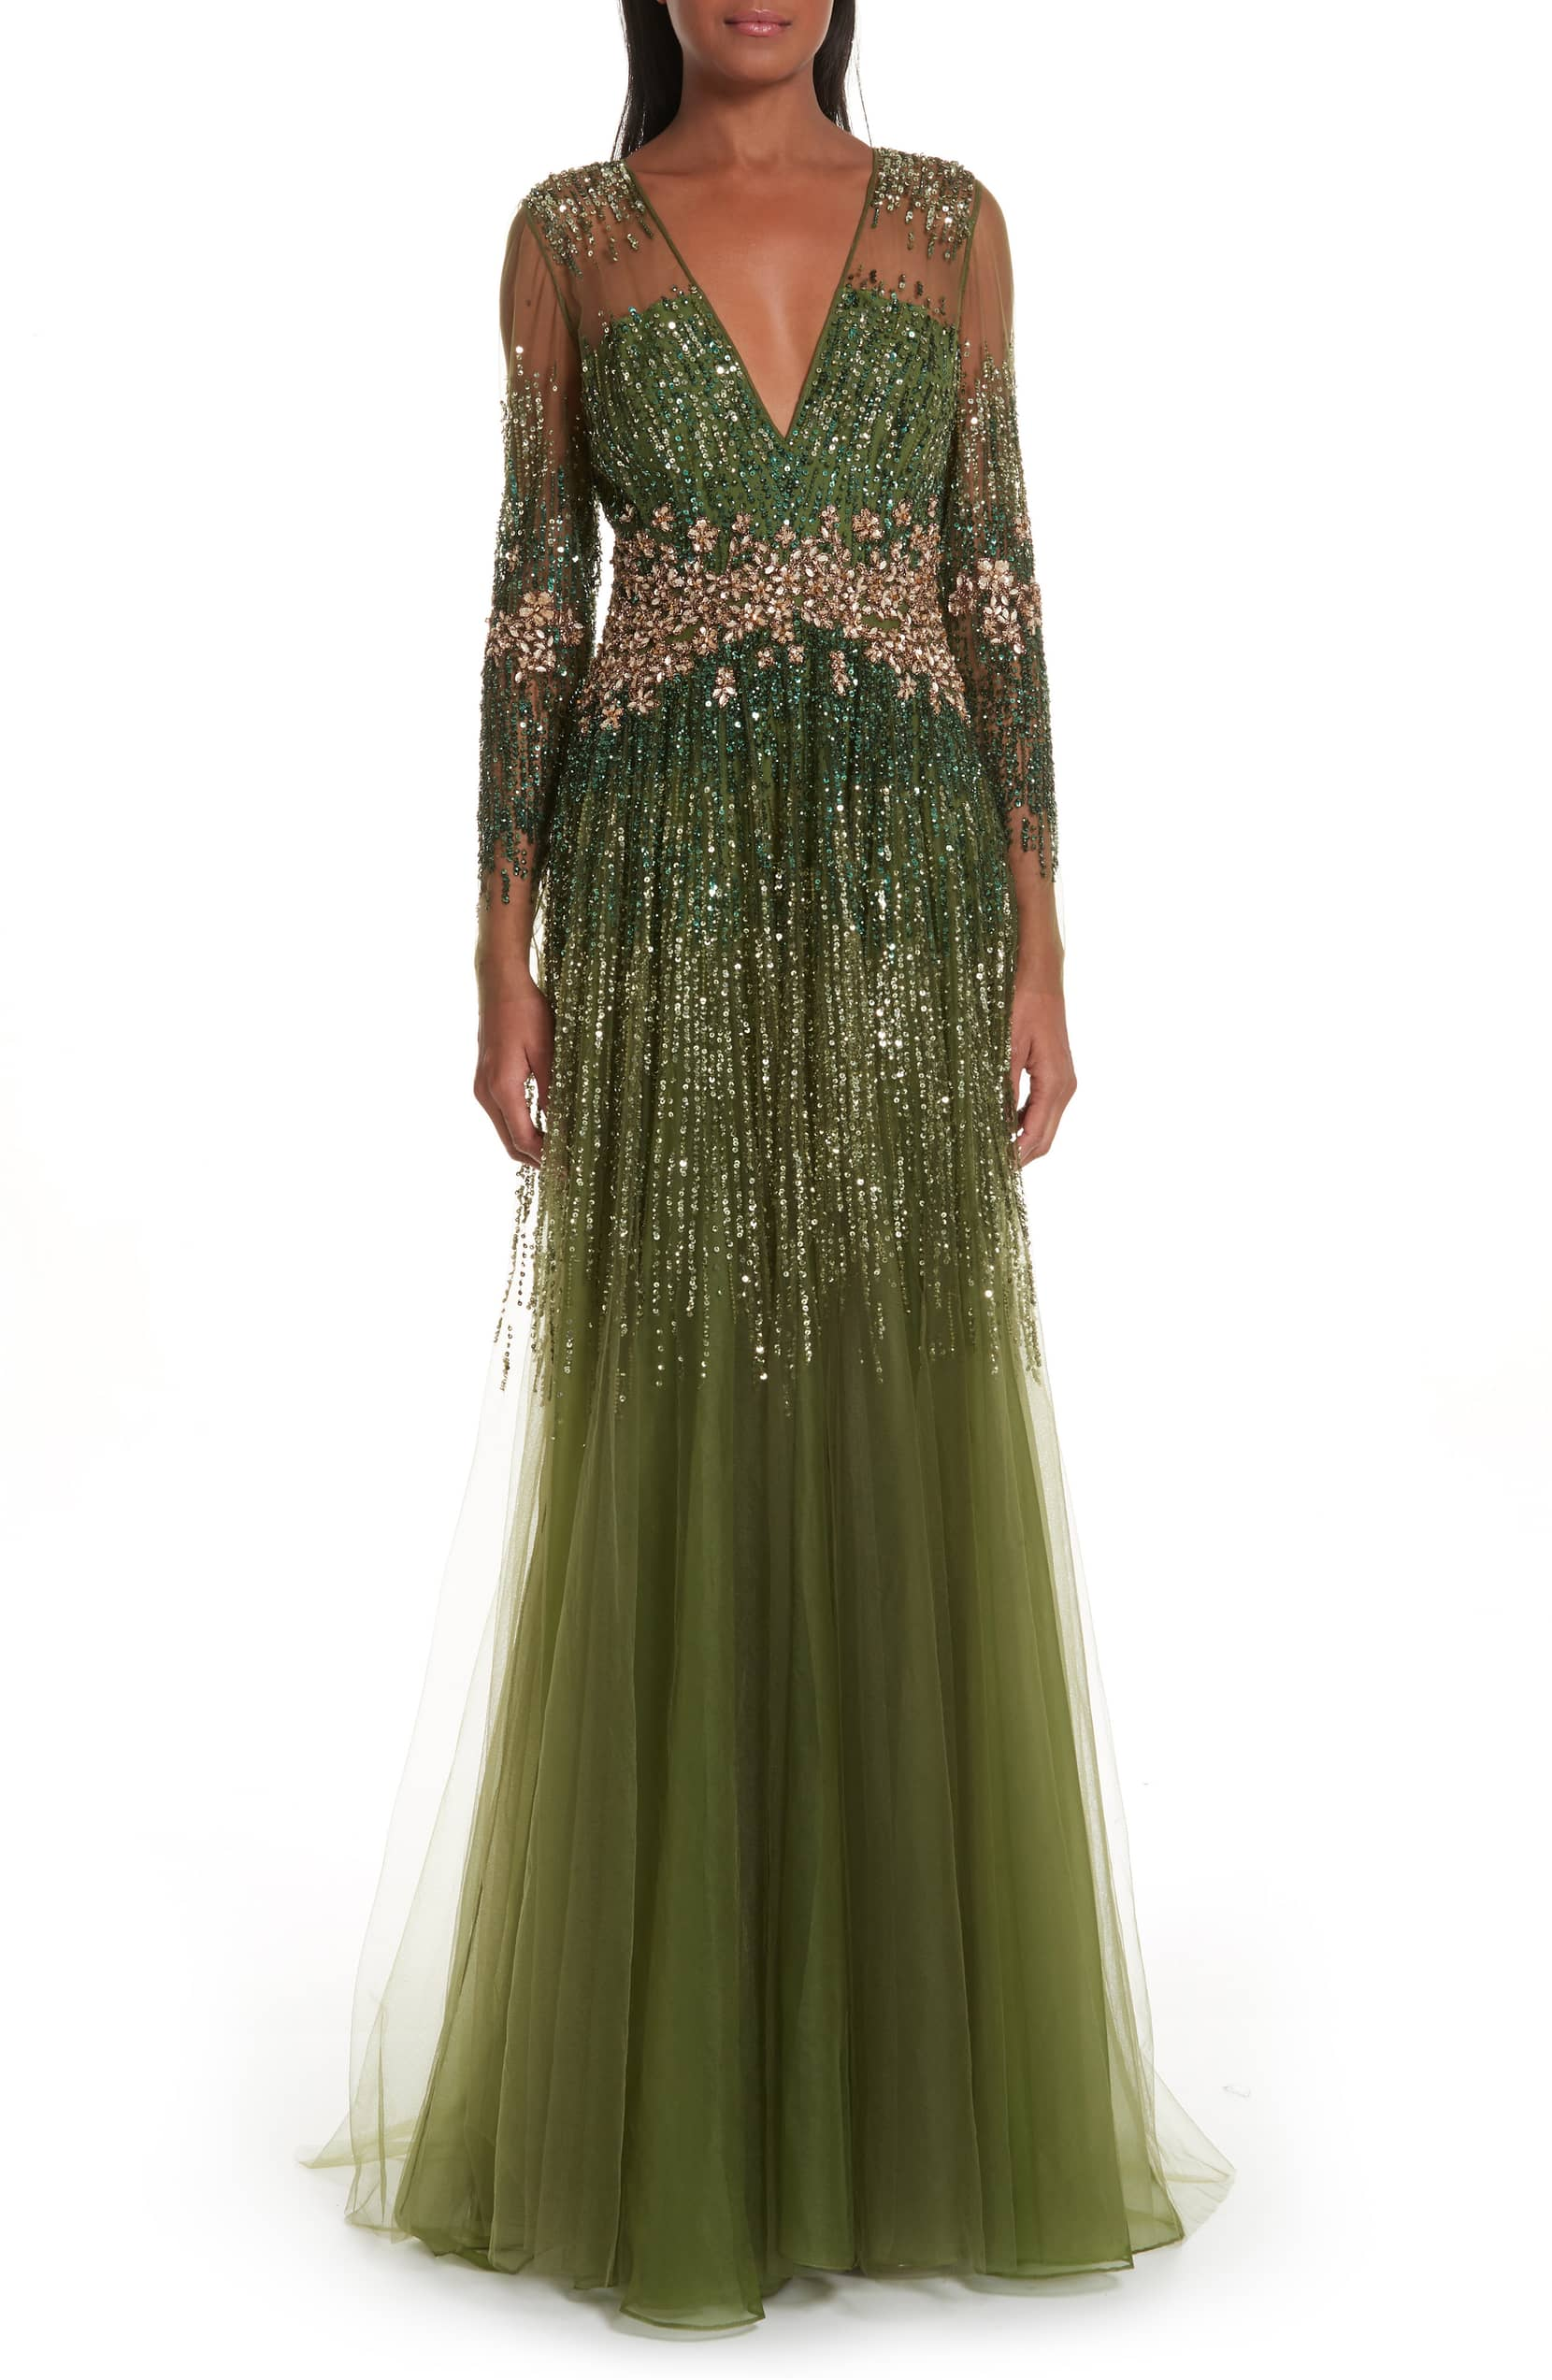 PAMELLA ROLAND Crystal Embellished A-Line Green Gown